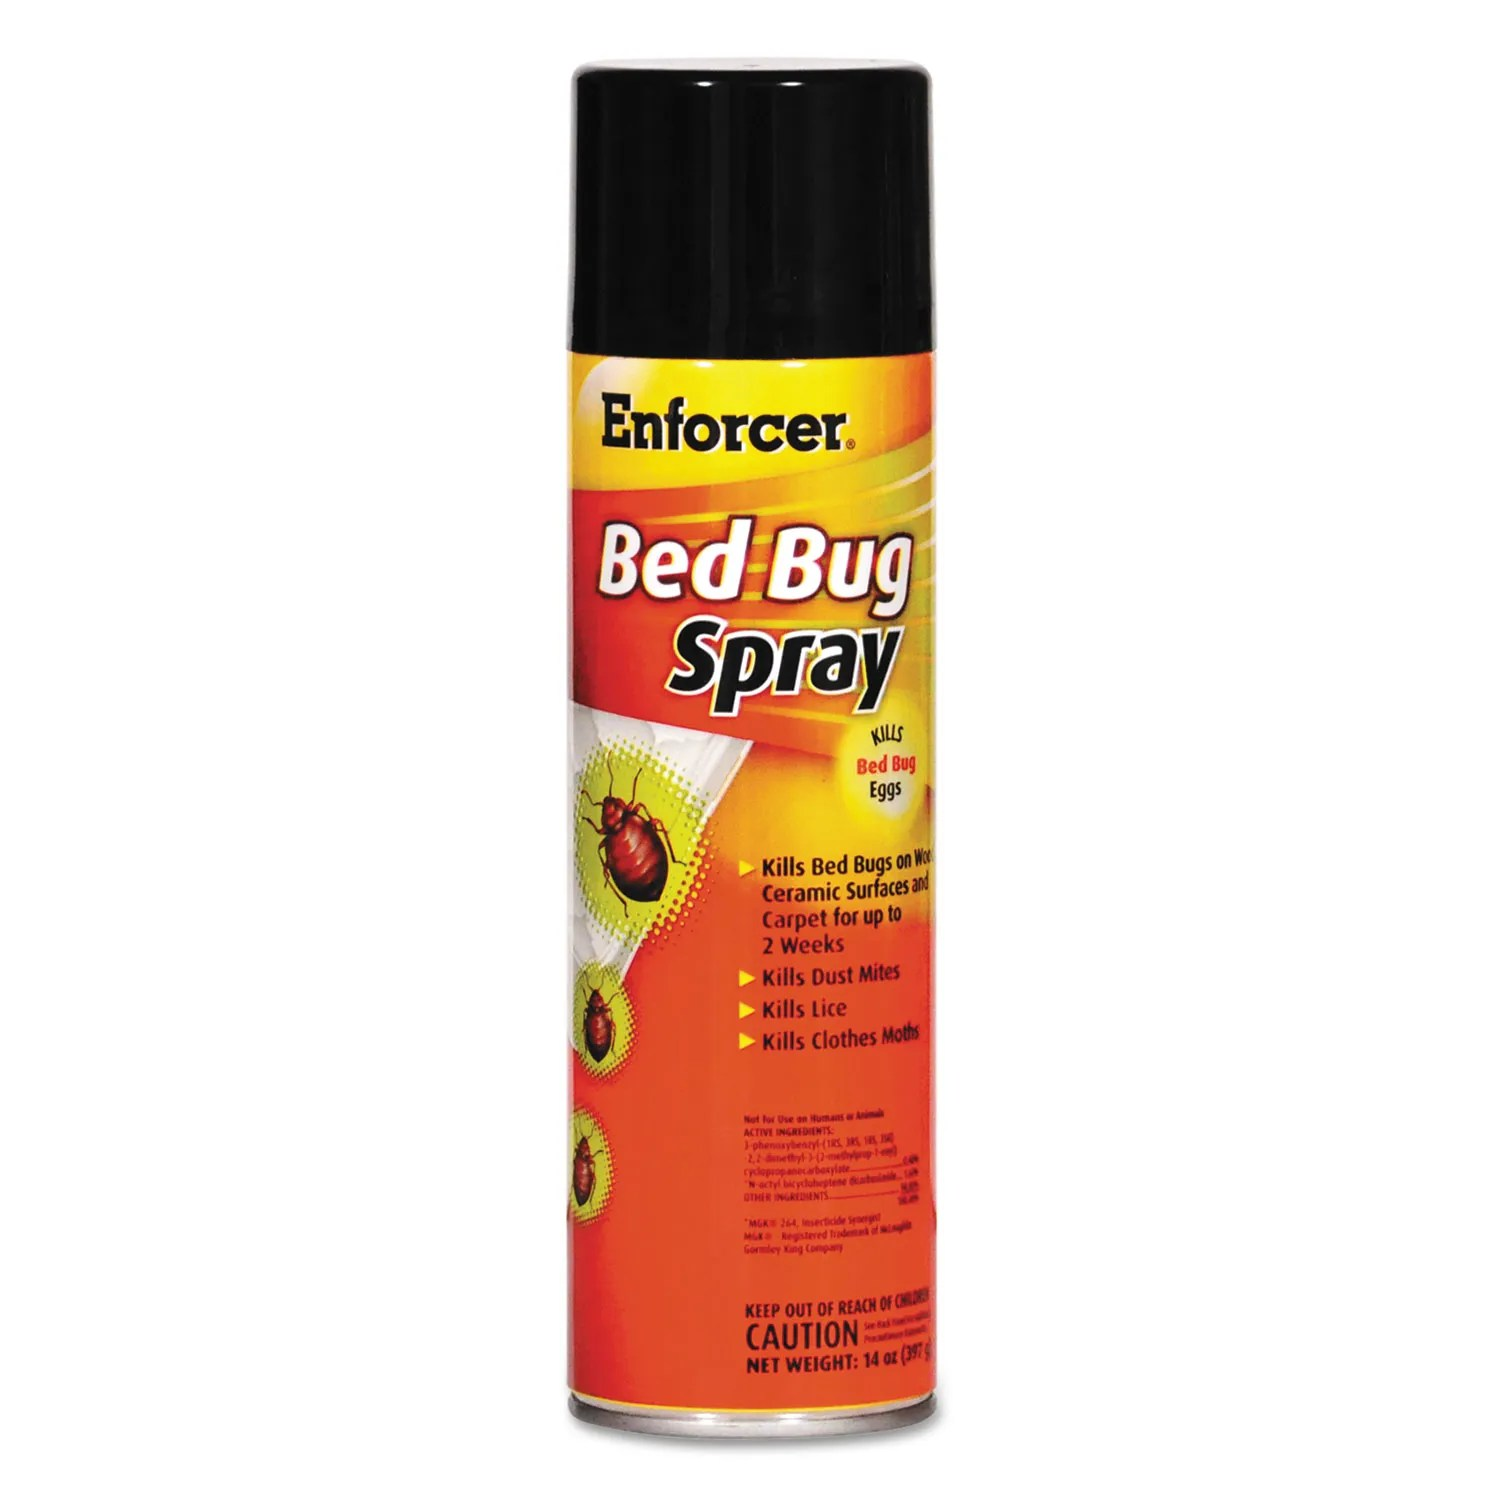 Spray To Kill Bed Bugs Bed Bug Spray 14 Oz Aerosol For Bed Bugs Dust Mites Lice Moths 12 Carton